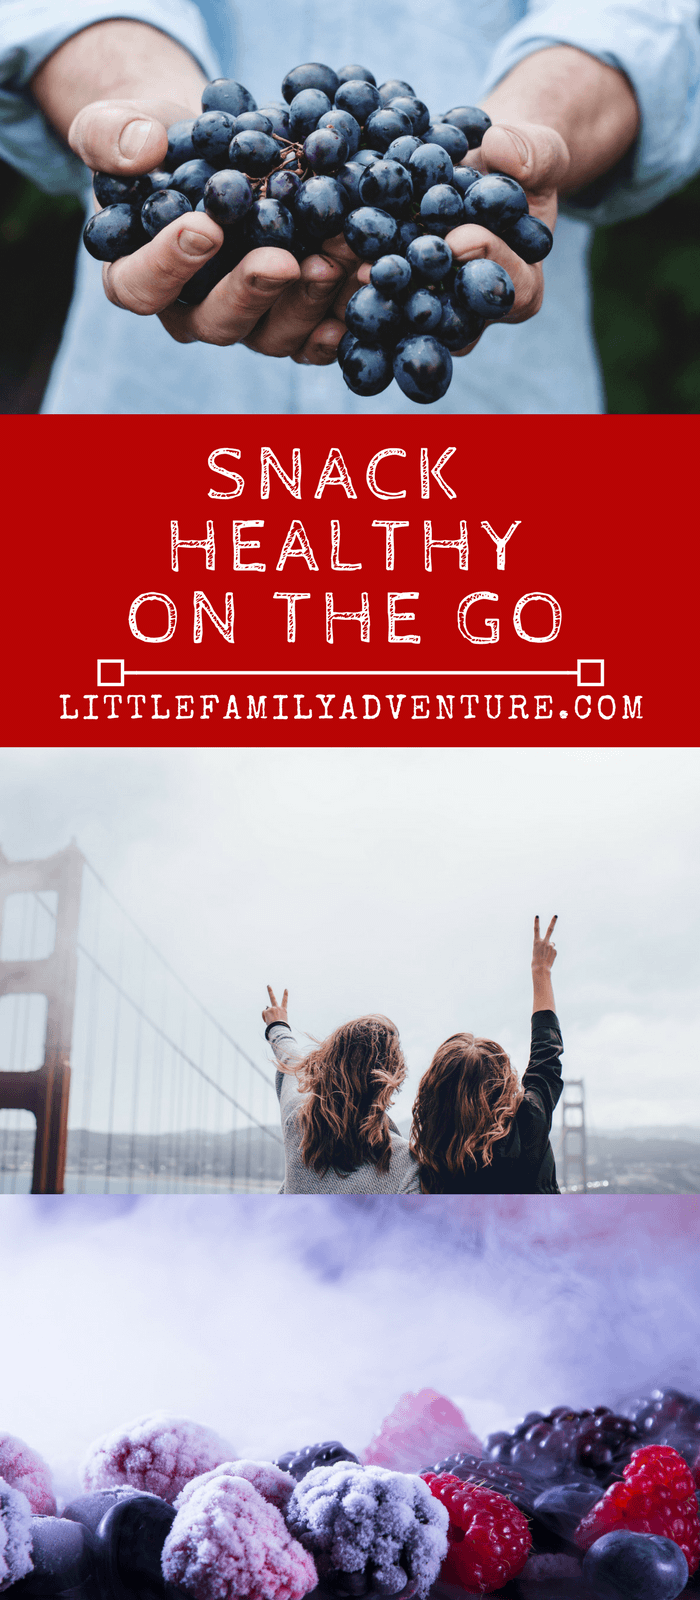 10 easy ways to snack healthy on the go - Here are a few simple things you can do you eat healthier, real food on the go, on a road trip, while you travel, or are just out running errands